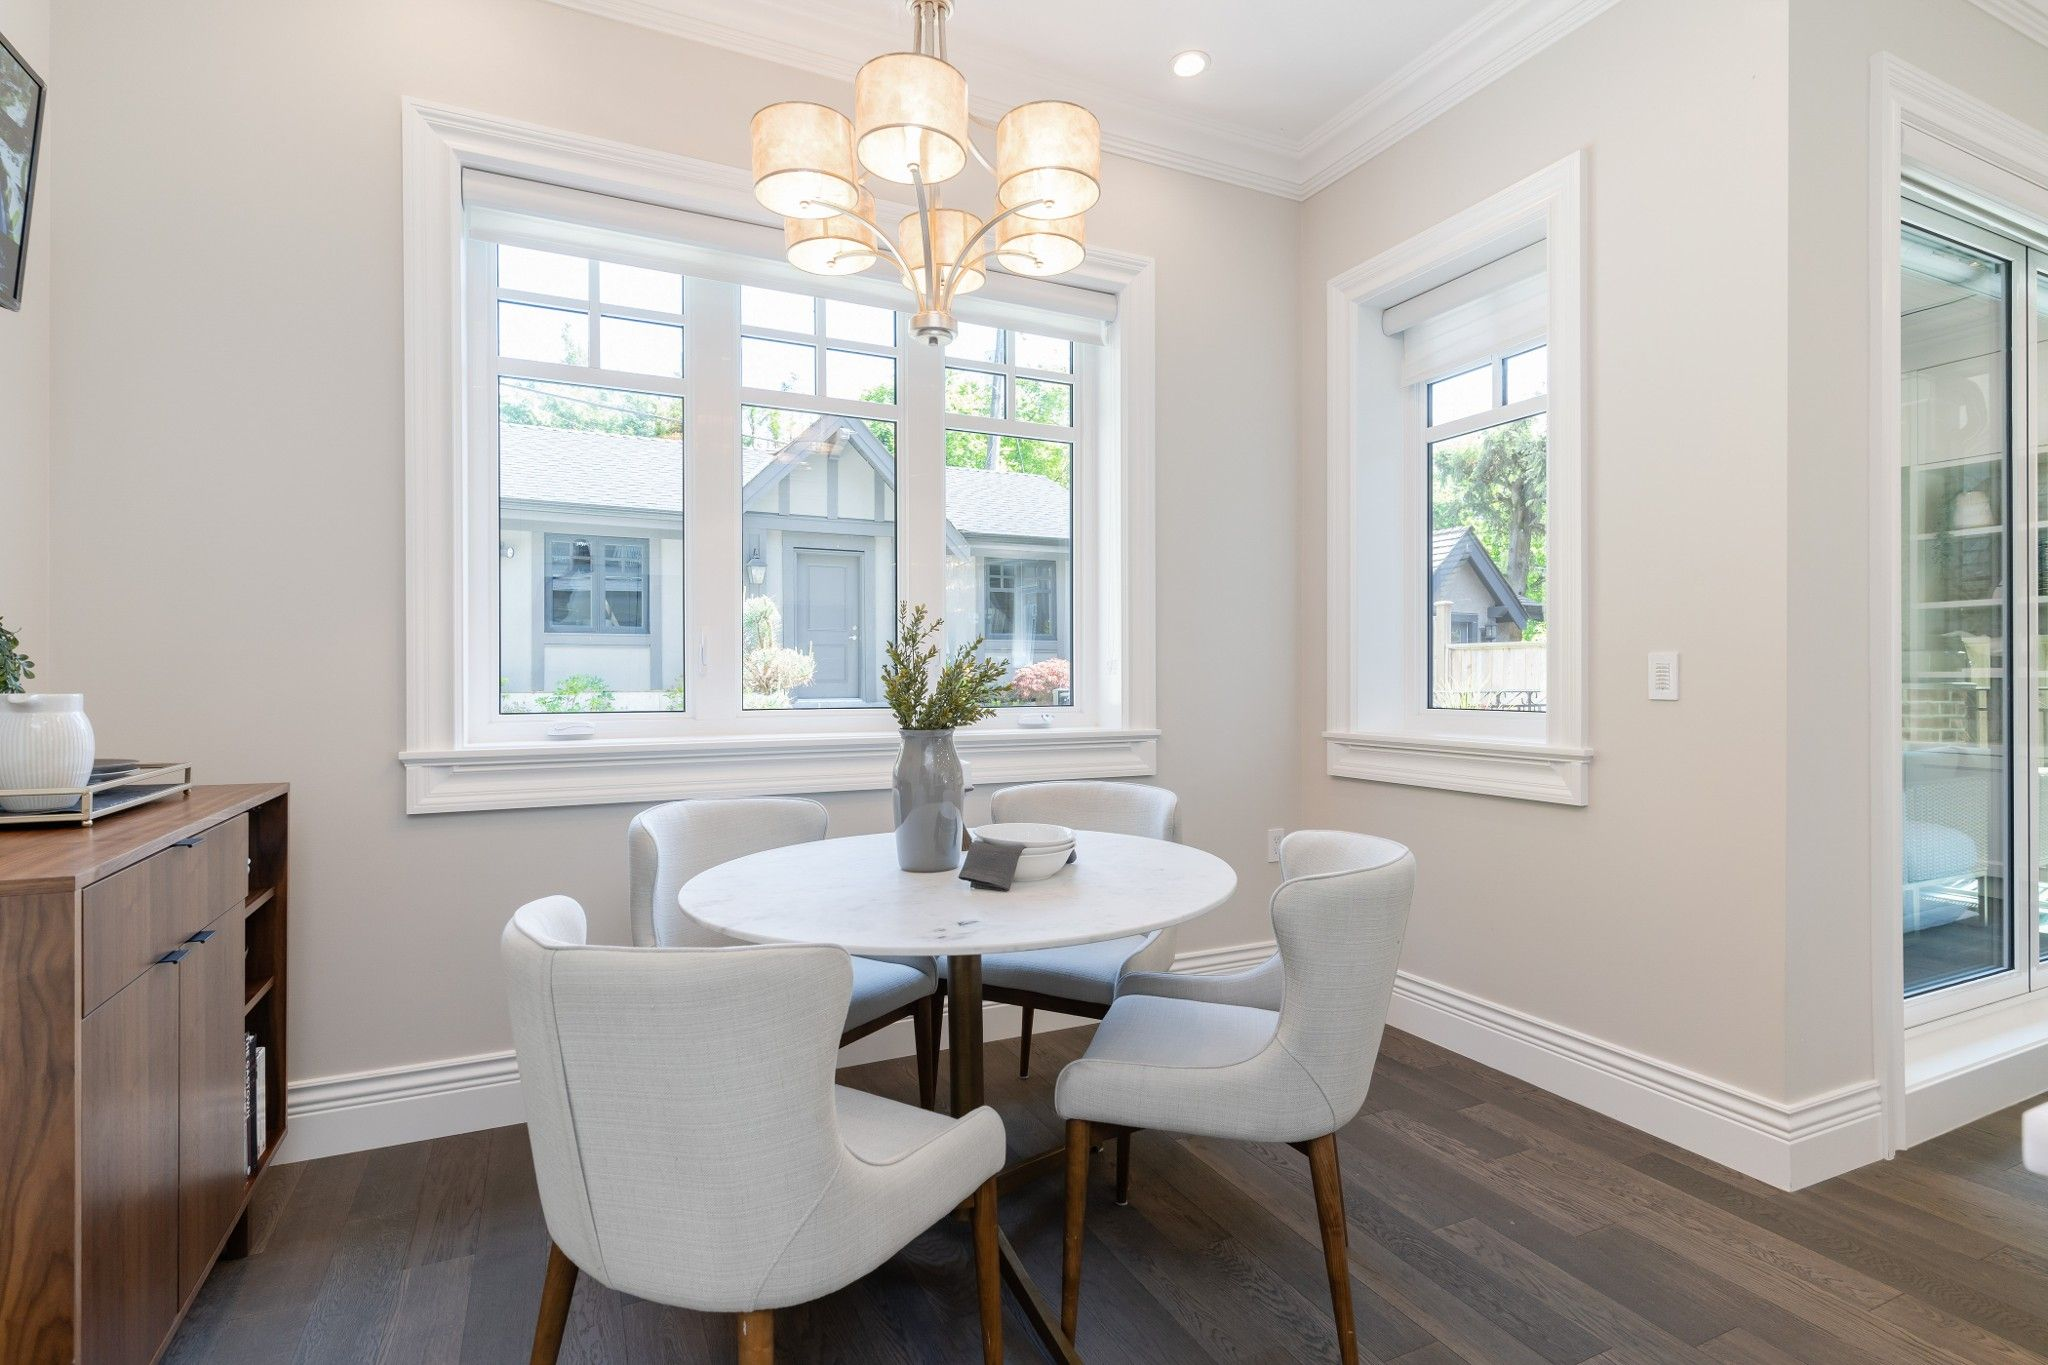 Photo 56: Photos: 5756 ALMA STREET in VANCOUVER: Southlands House for sale (Vancouver West)  : MLS®# R2588229